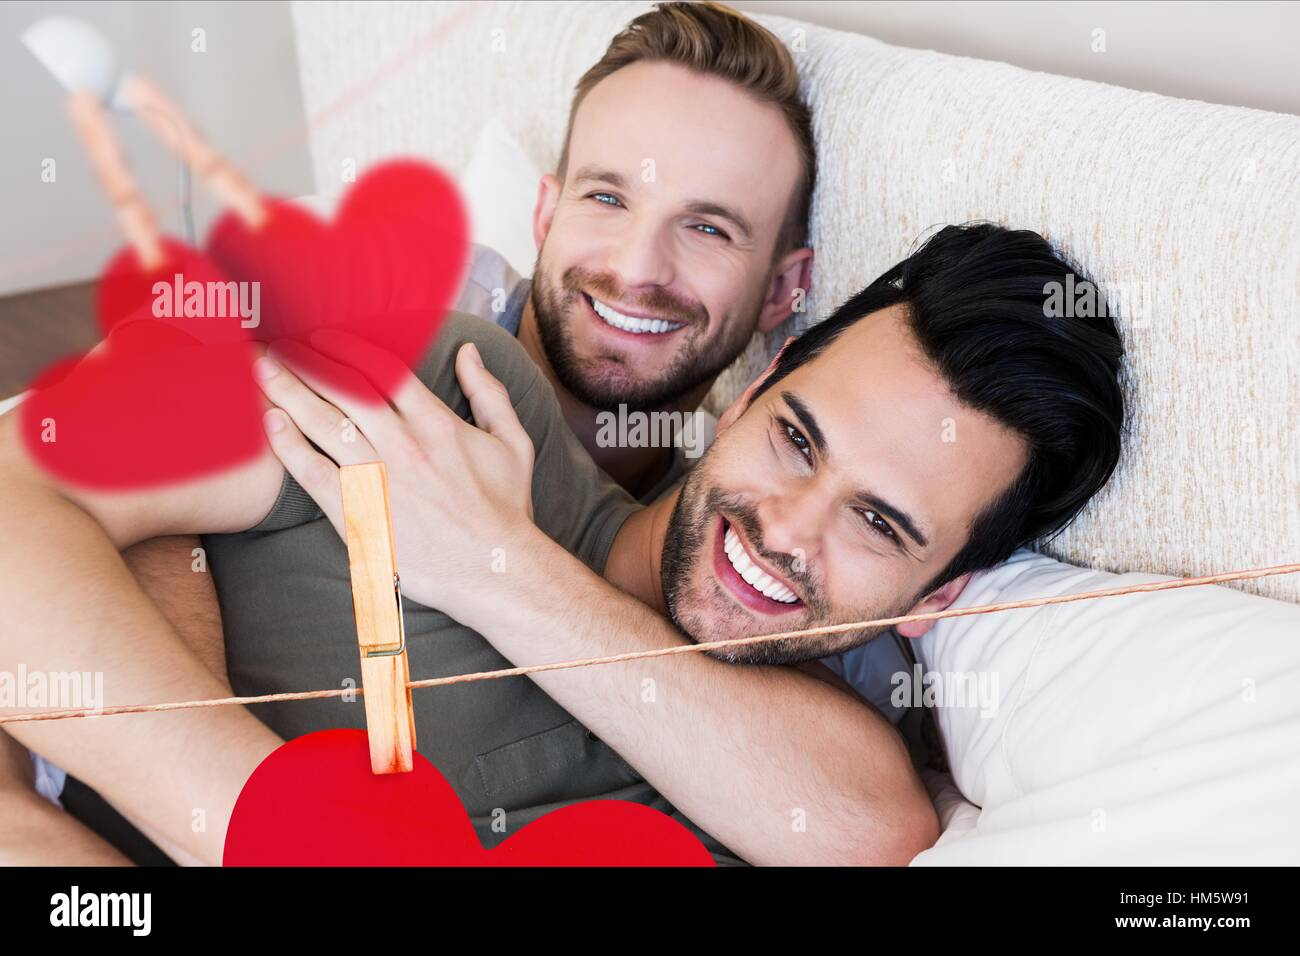 Homosexual couple embracing each other in bedroom at home Stock Photo